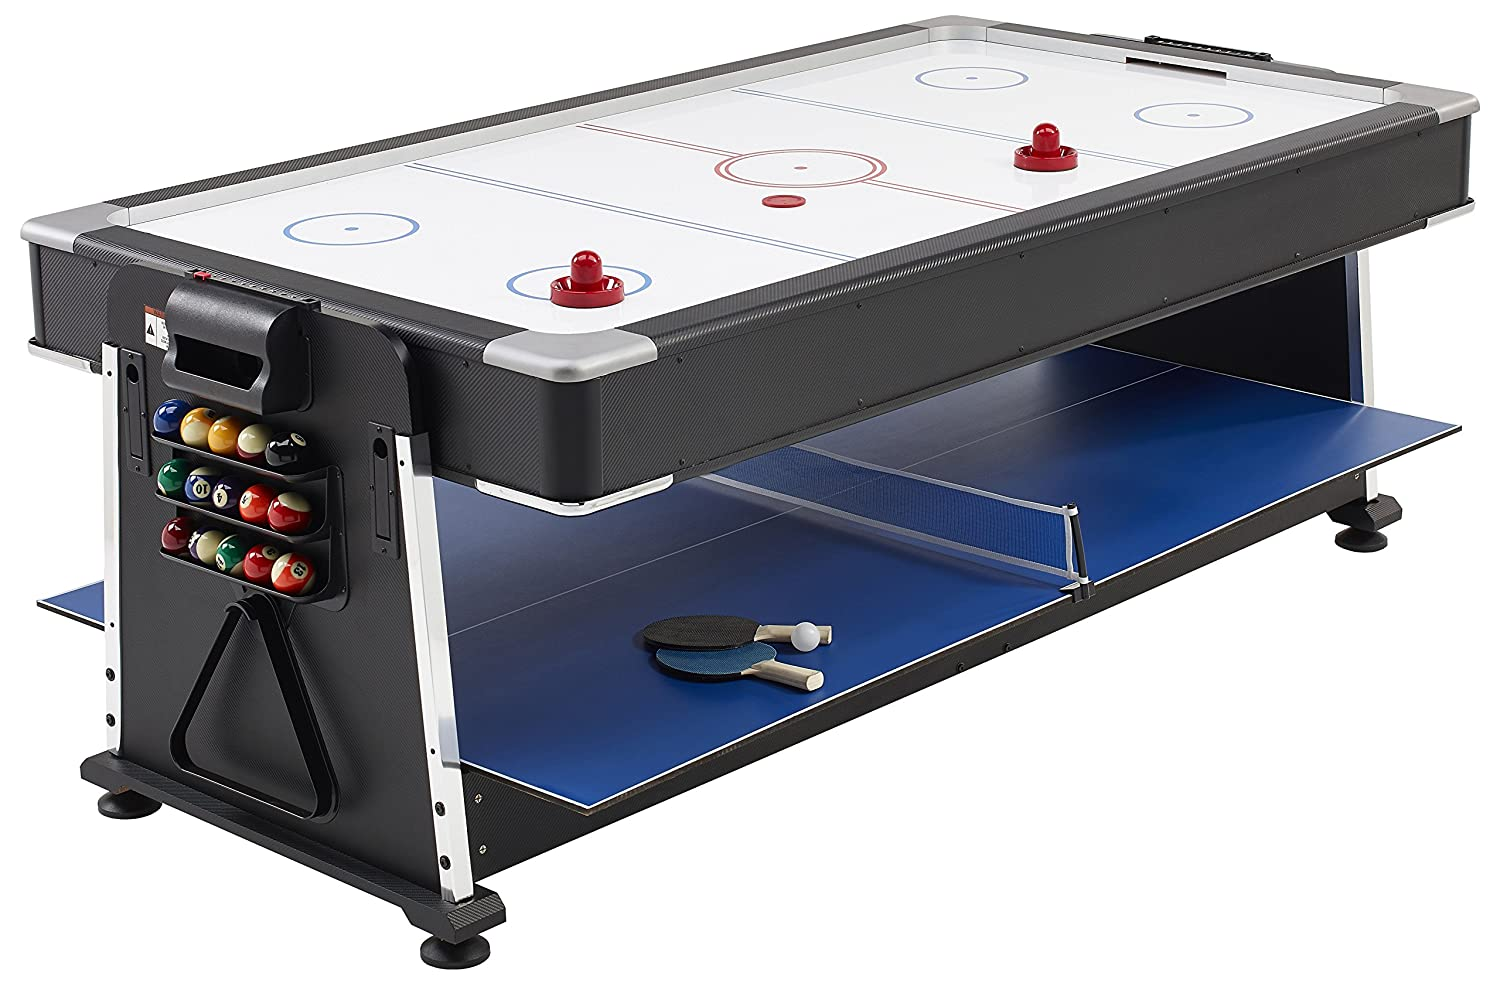 Mightymast Revolver 3 In 1 Pool/Air Hockey/Table Tennis Table   Black, 7  Ft: Amazon.co.uk: Sports U0026 Outdoors